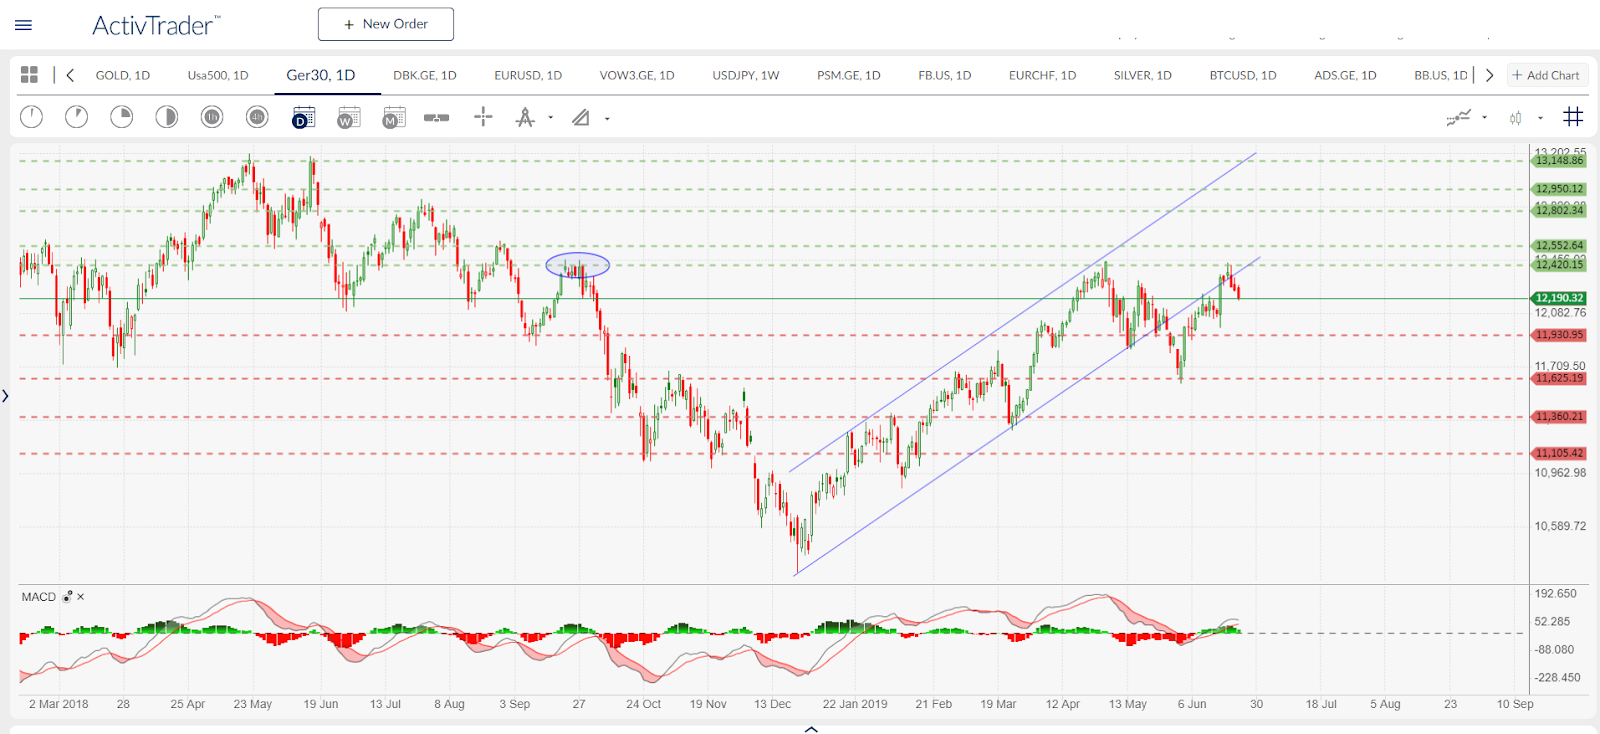 Ger30 - daily chart. Source: ActivTrader